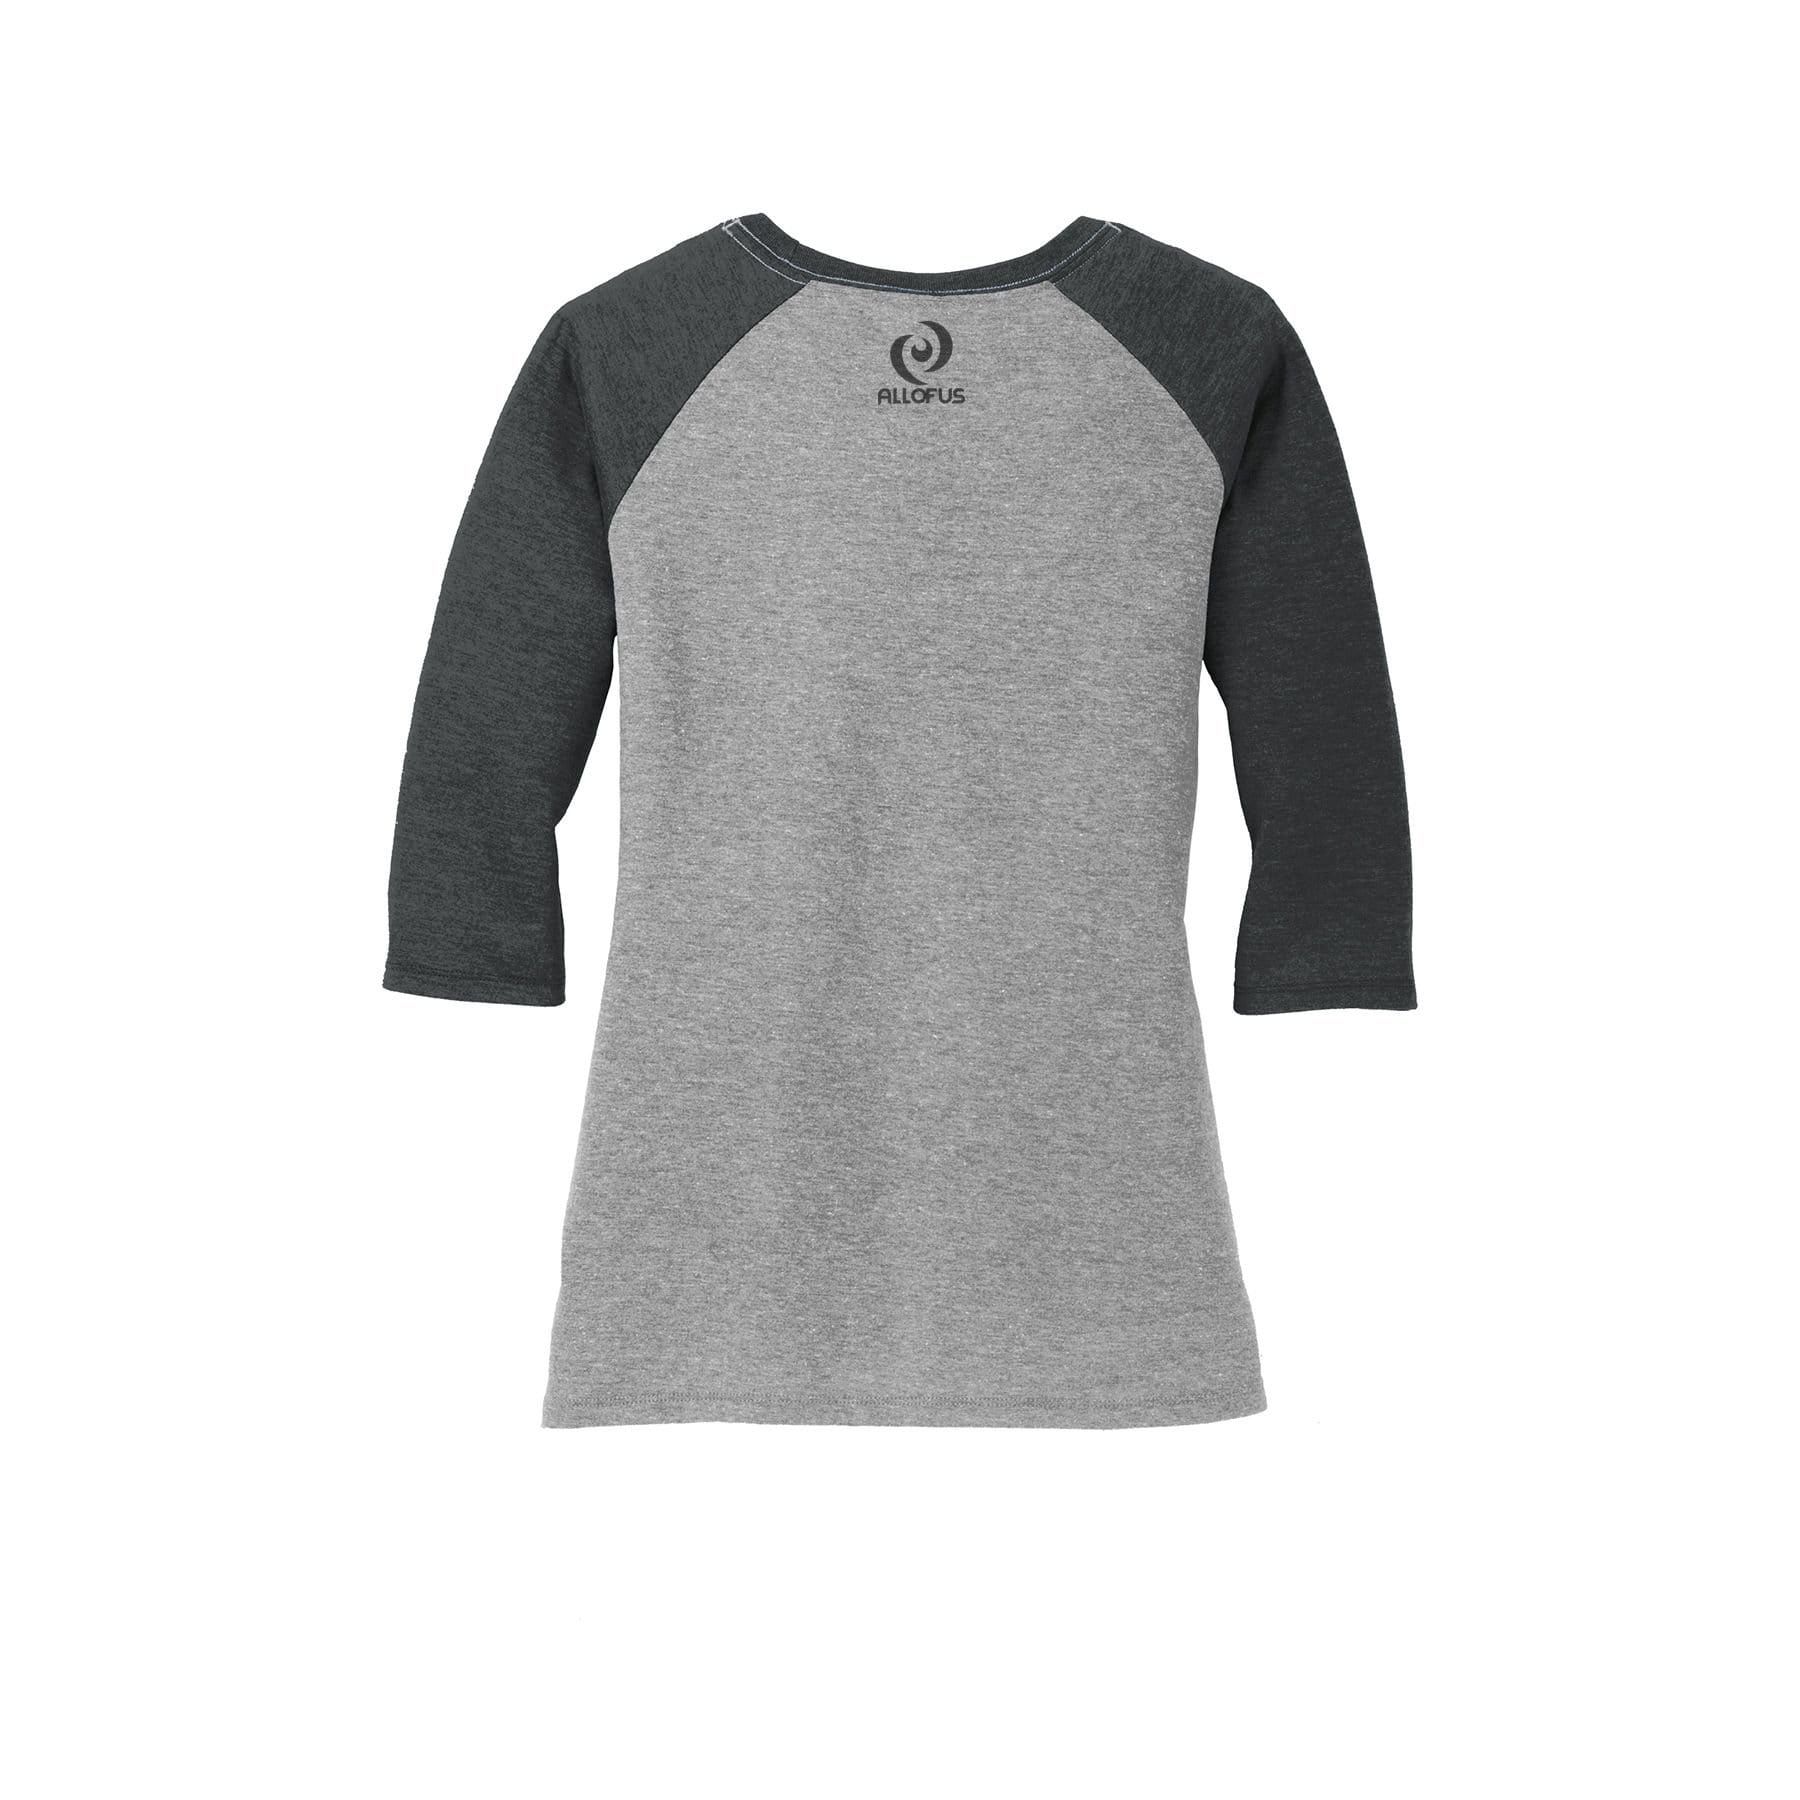 ac6aa699d Womens All of Us Black Frost/Grey Frost Tri-Blend 3/4-Sleeve Raglan T-shirt